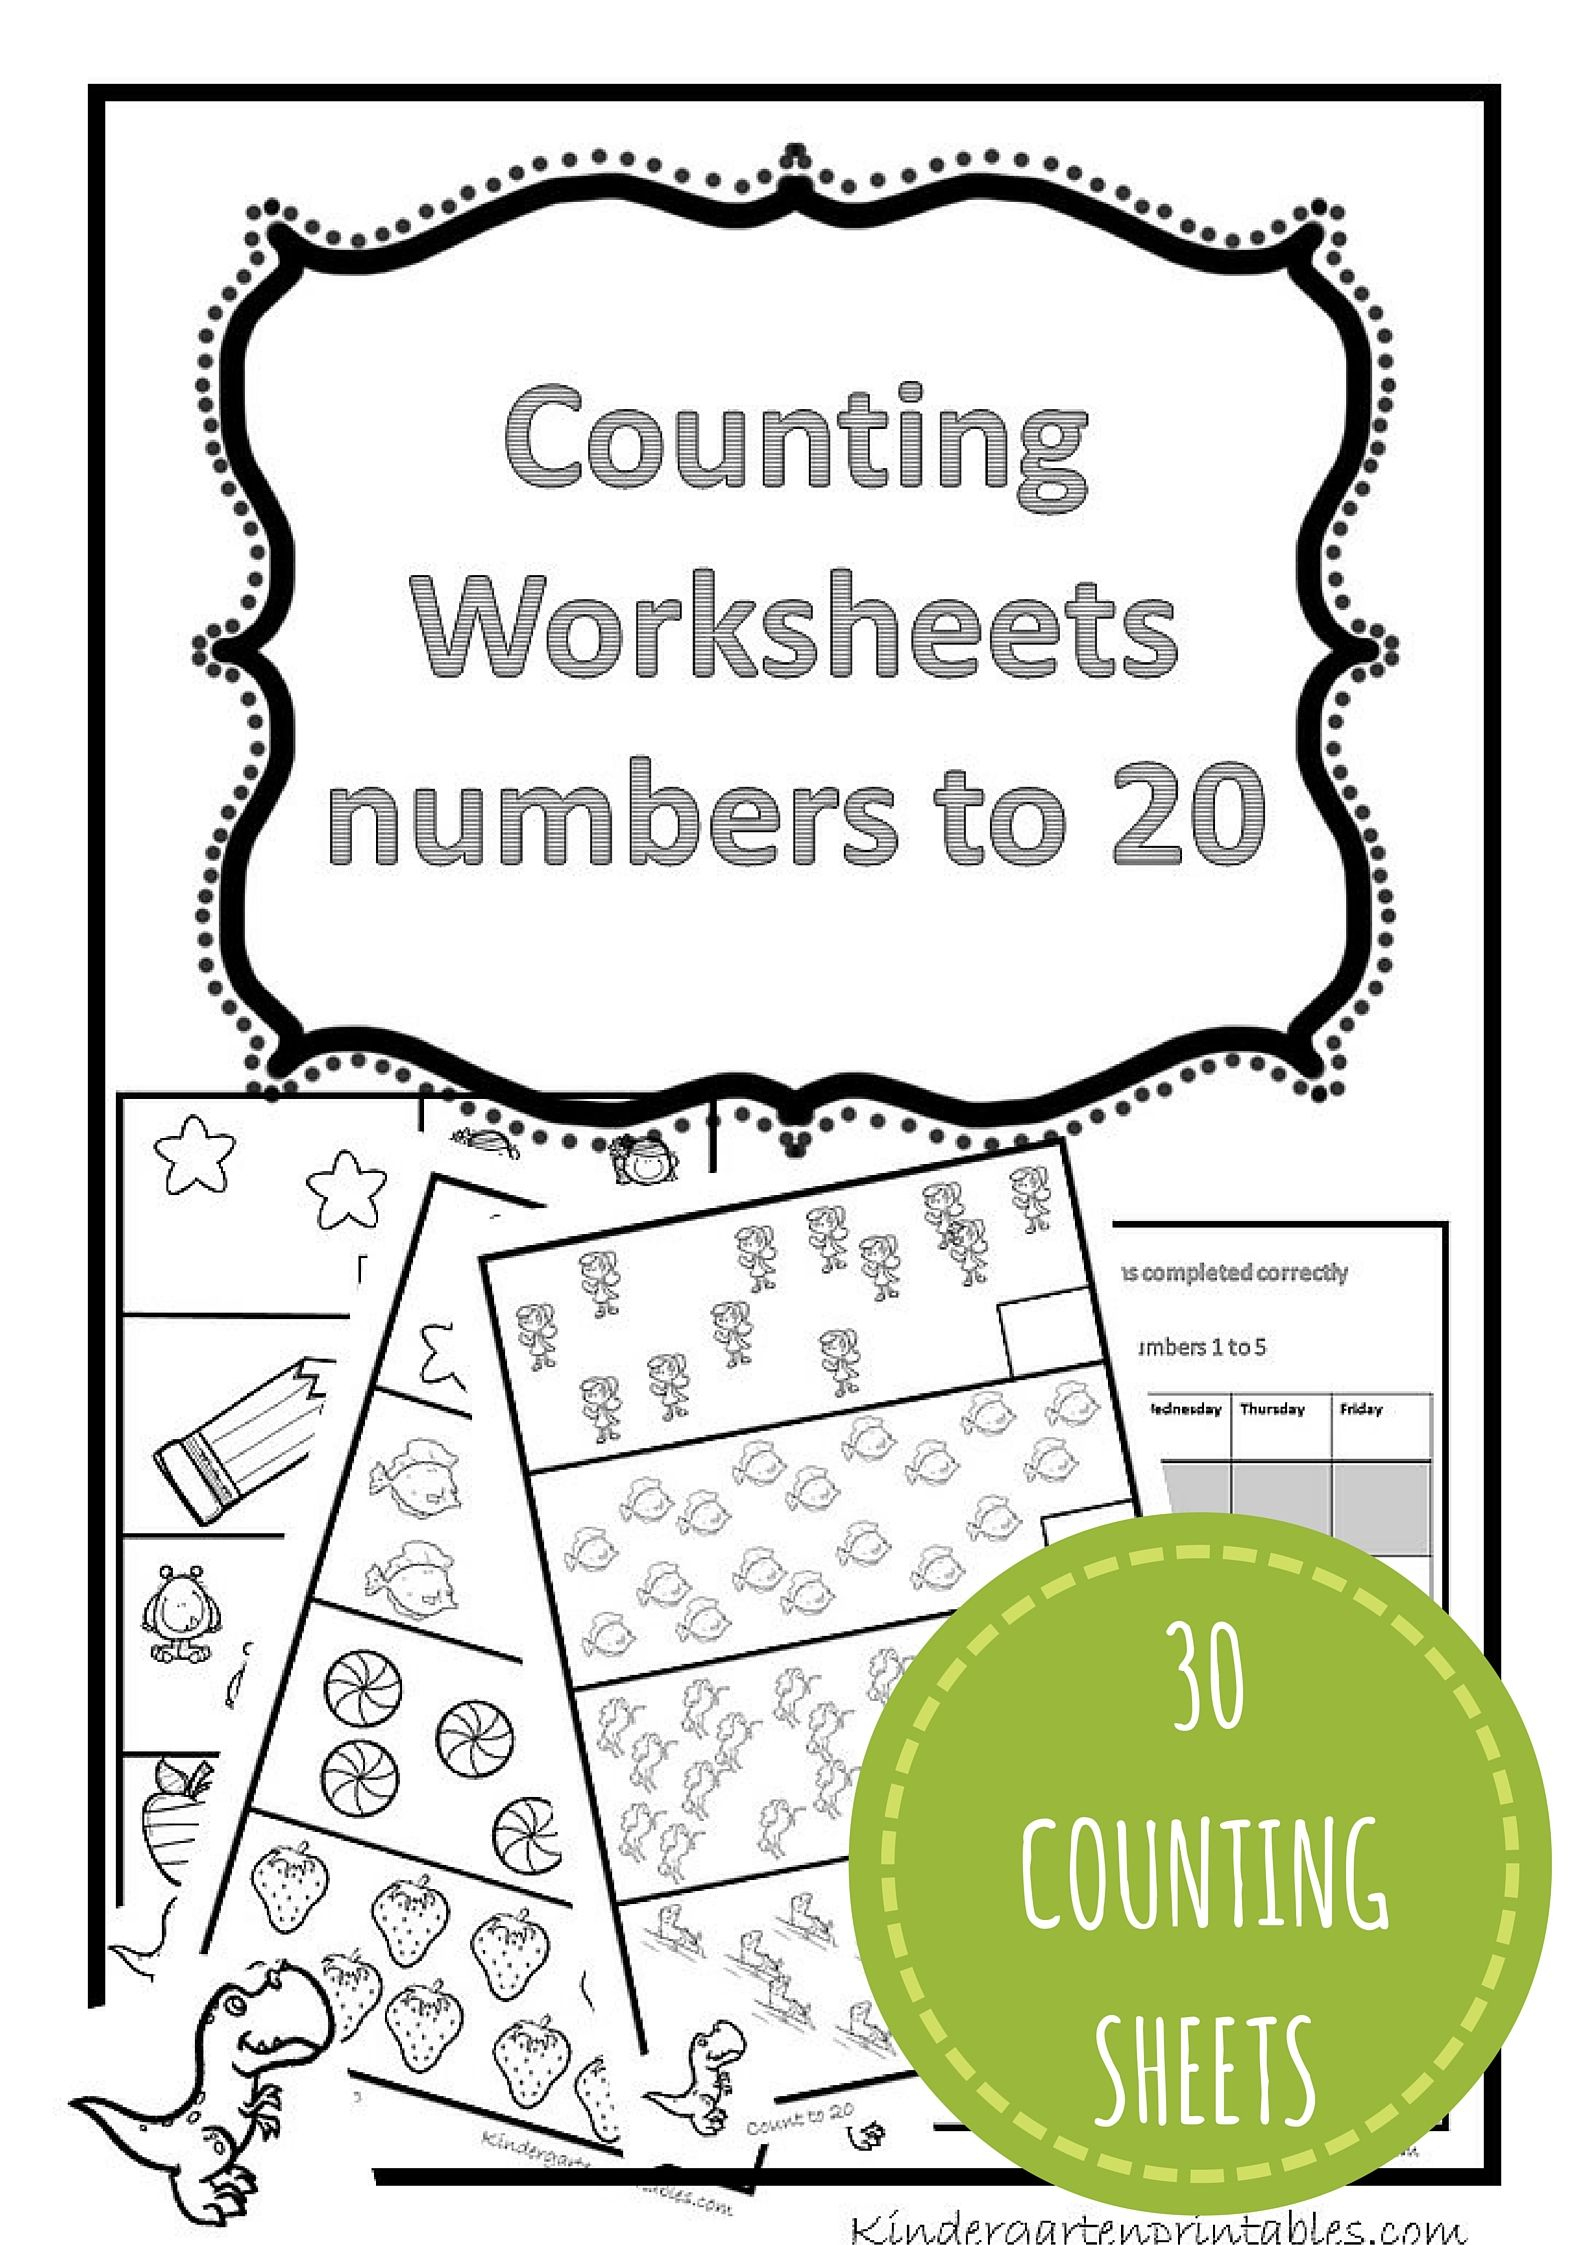 Counting Worksheets 1-20 Free Printable Workbook Counting Worksheets - Free Printable Math Workbooks